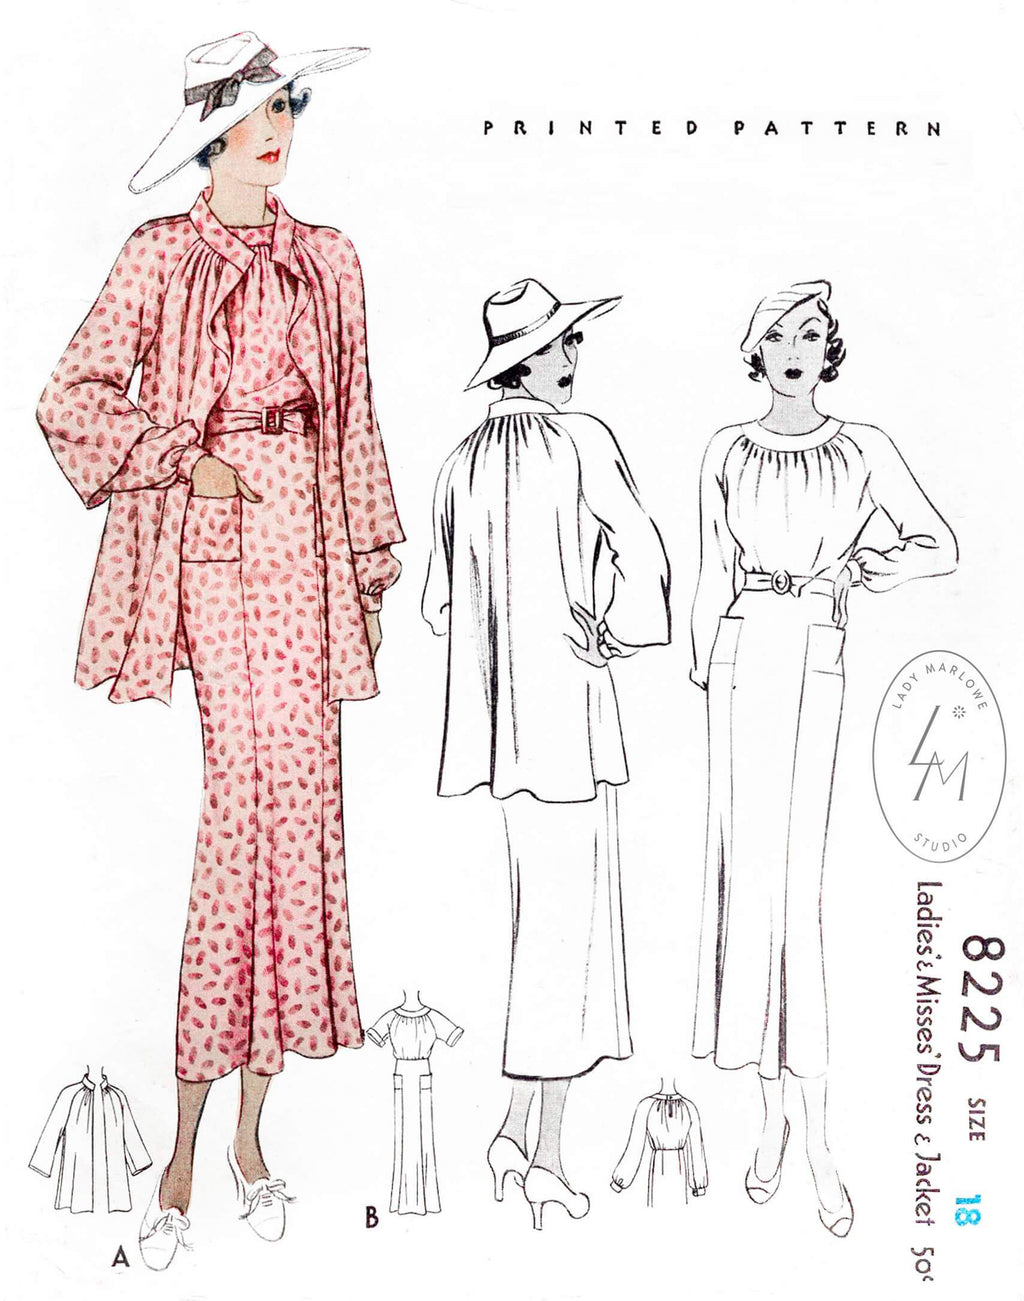 McCall 8225 1930s 1935 dress and jacket raglan sleeves vintage sewing pattern reproductino